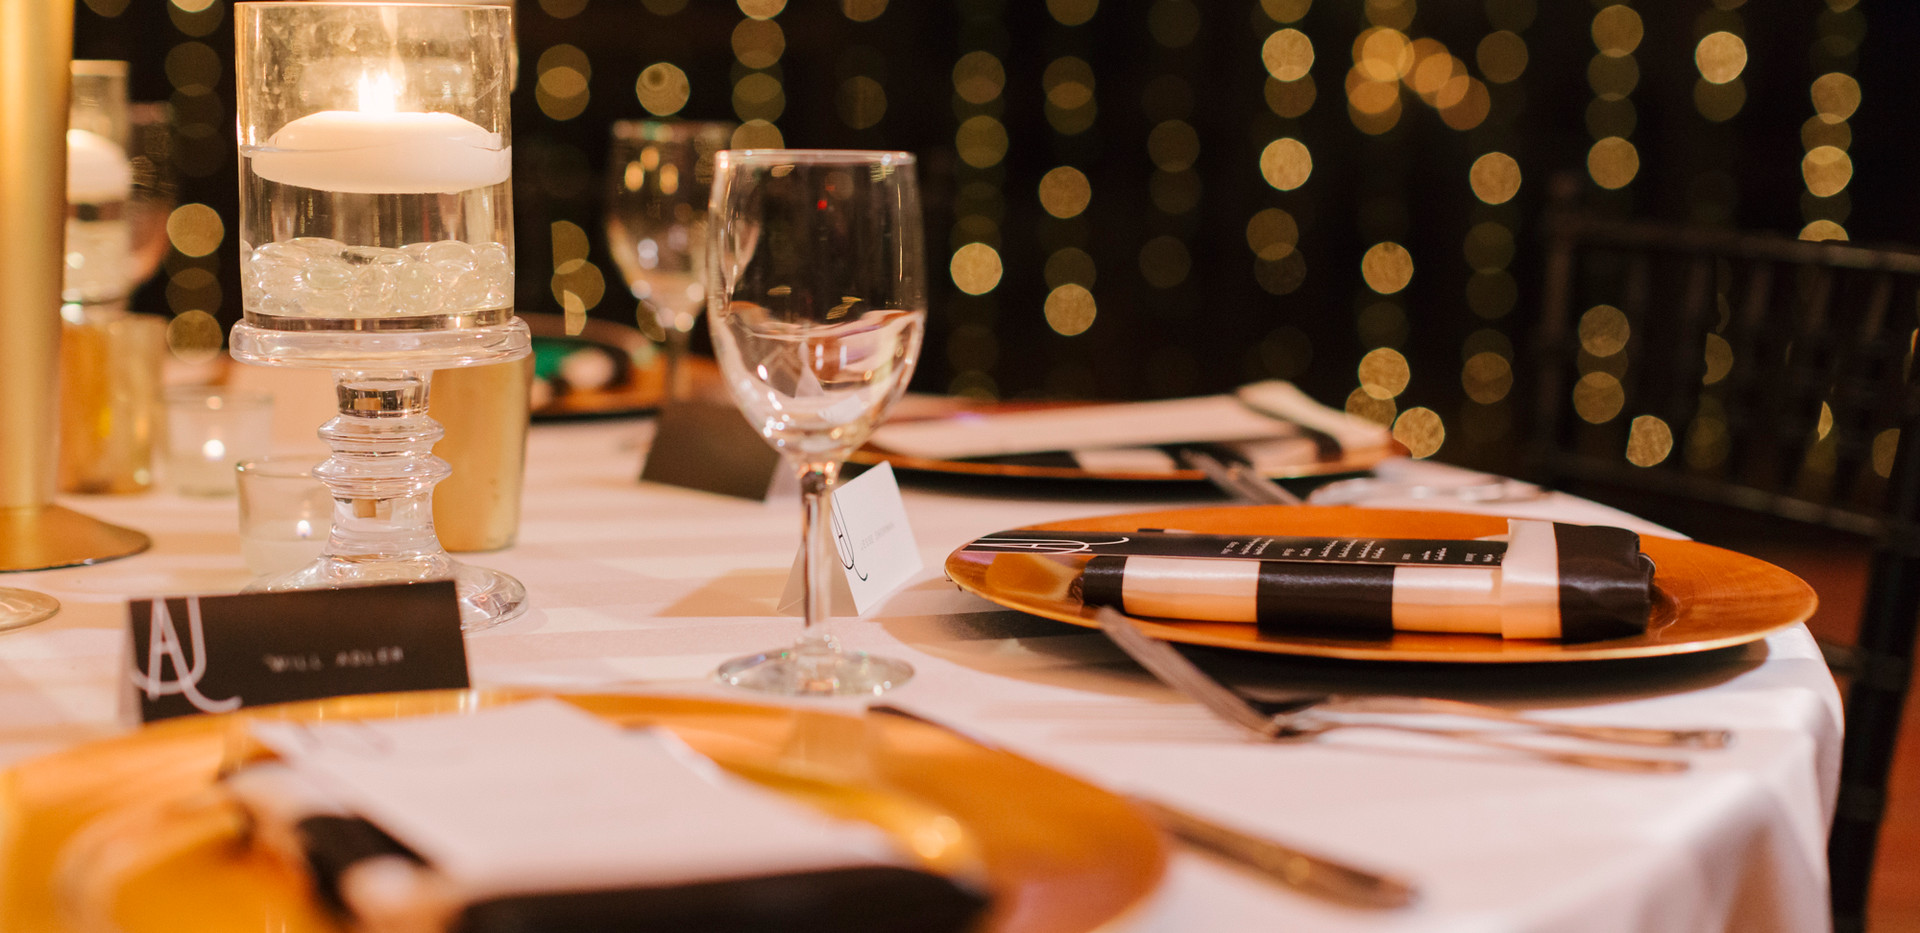 Gold and Black Wedding Reception Table Setting